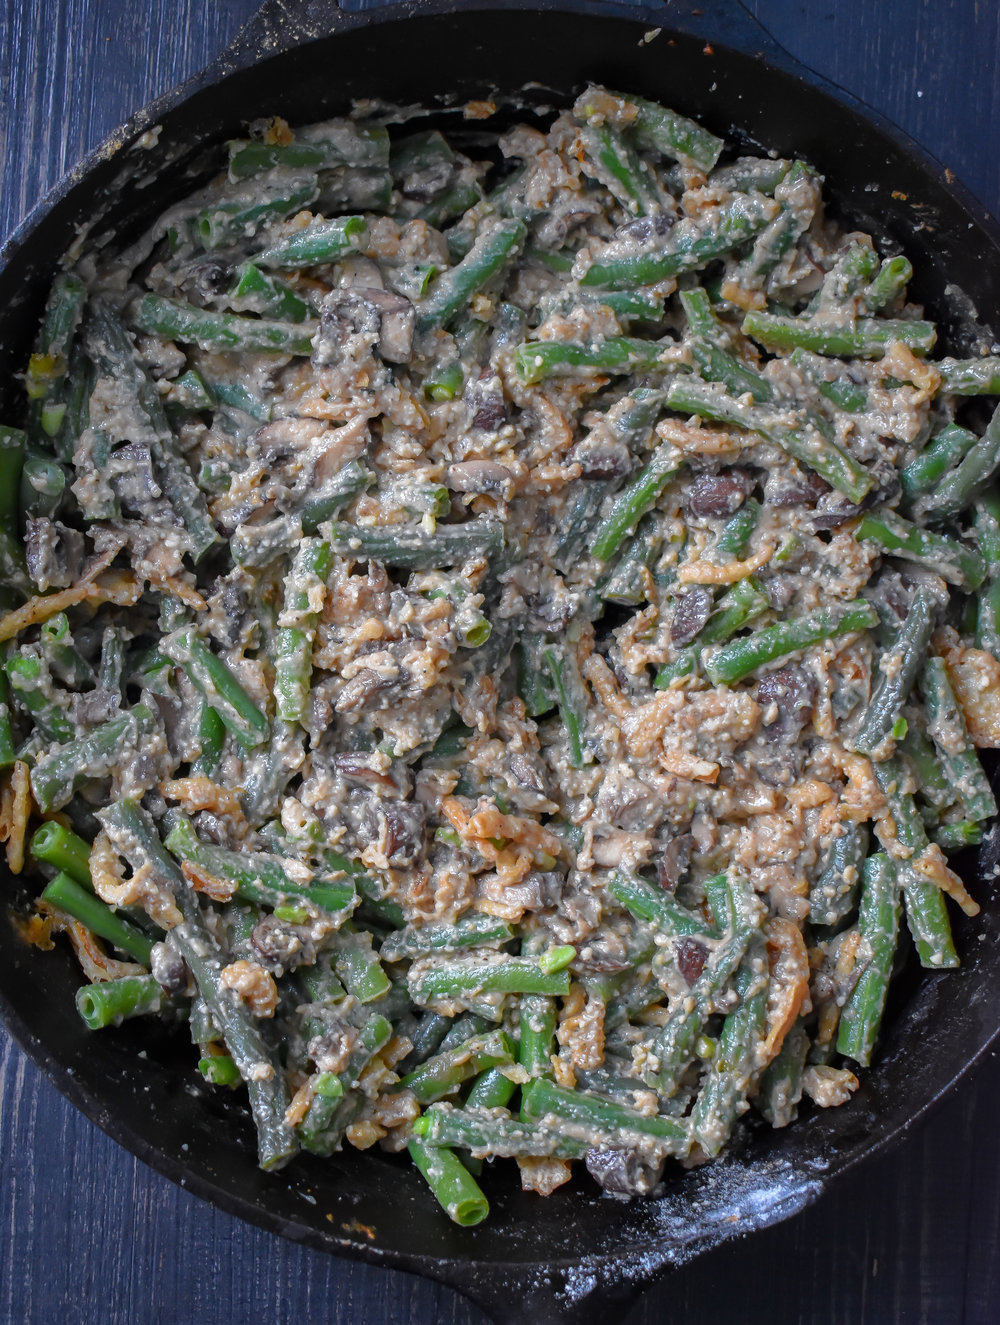 6. Once off the heat, mix in the green beans and about 1/3 of the crispy shallots.